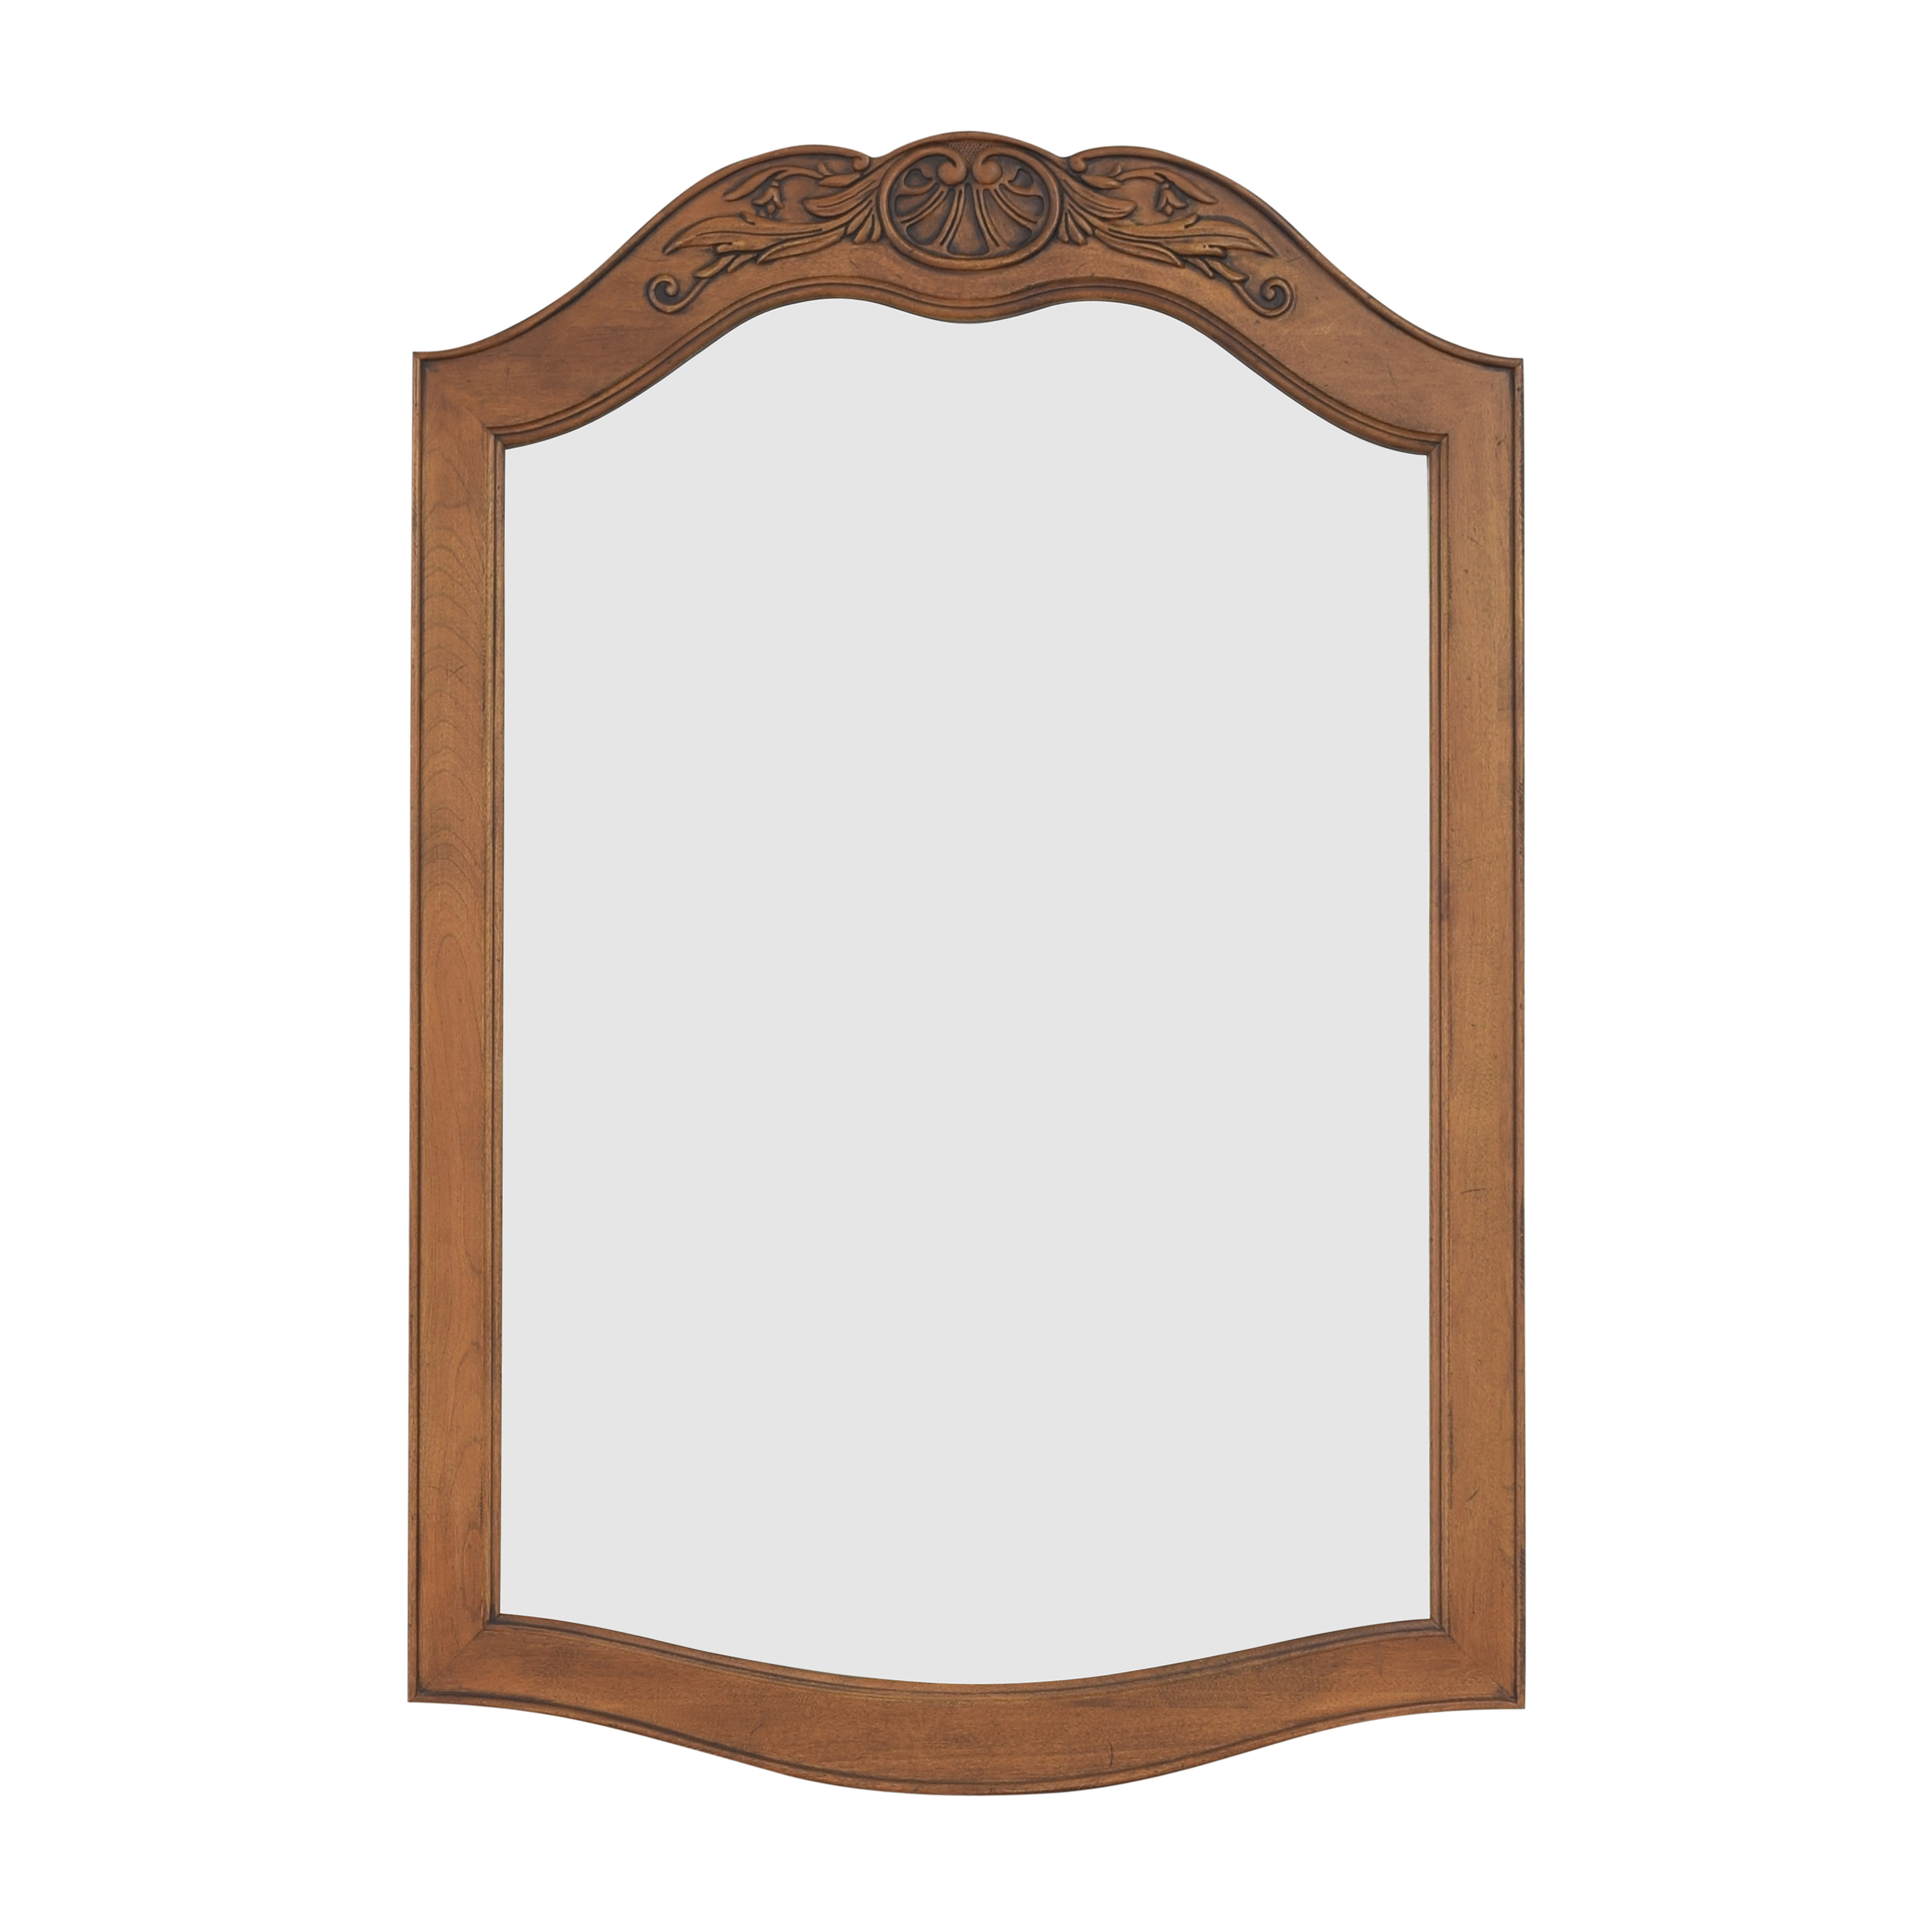 Ethan Allen Ethan Allen Country French Framed Mirror Mirrors